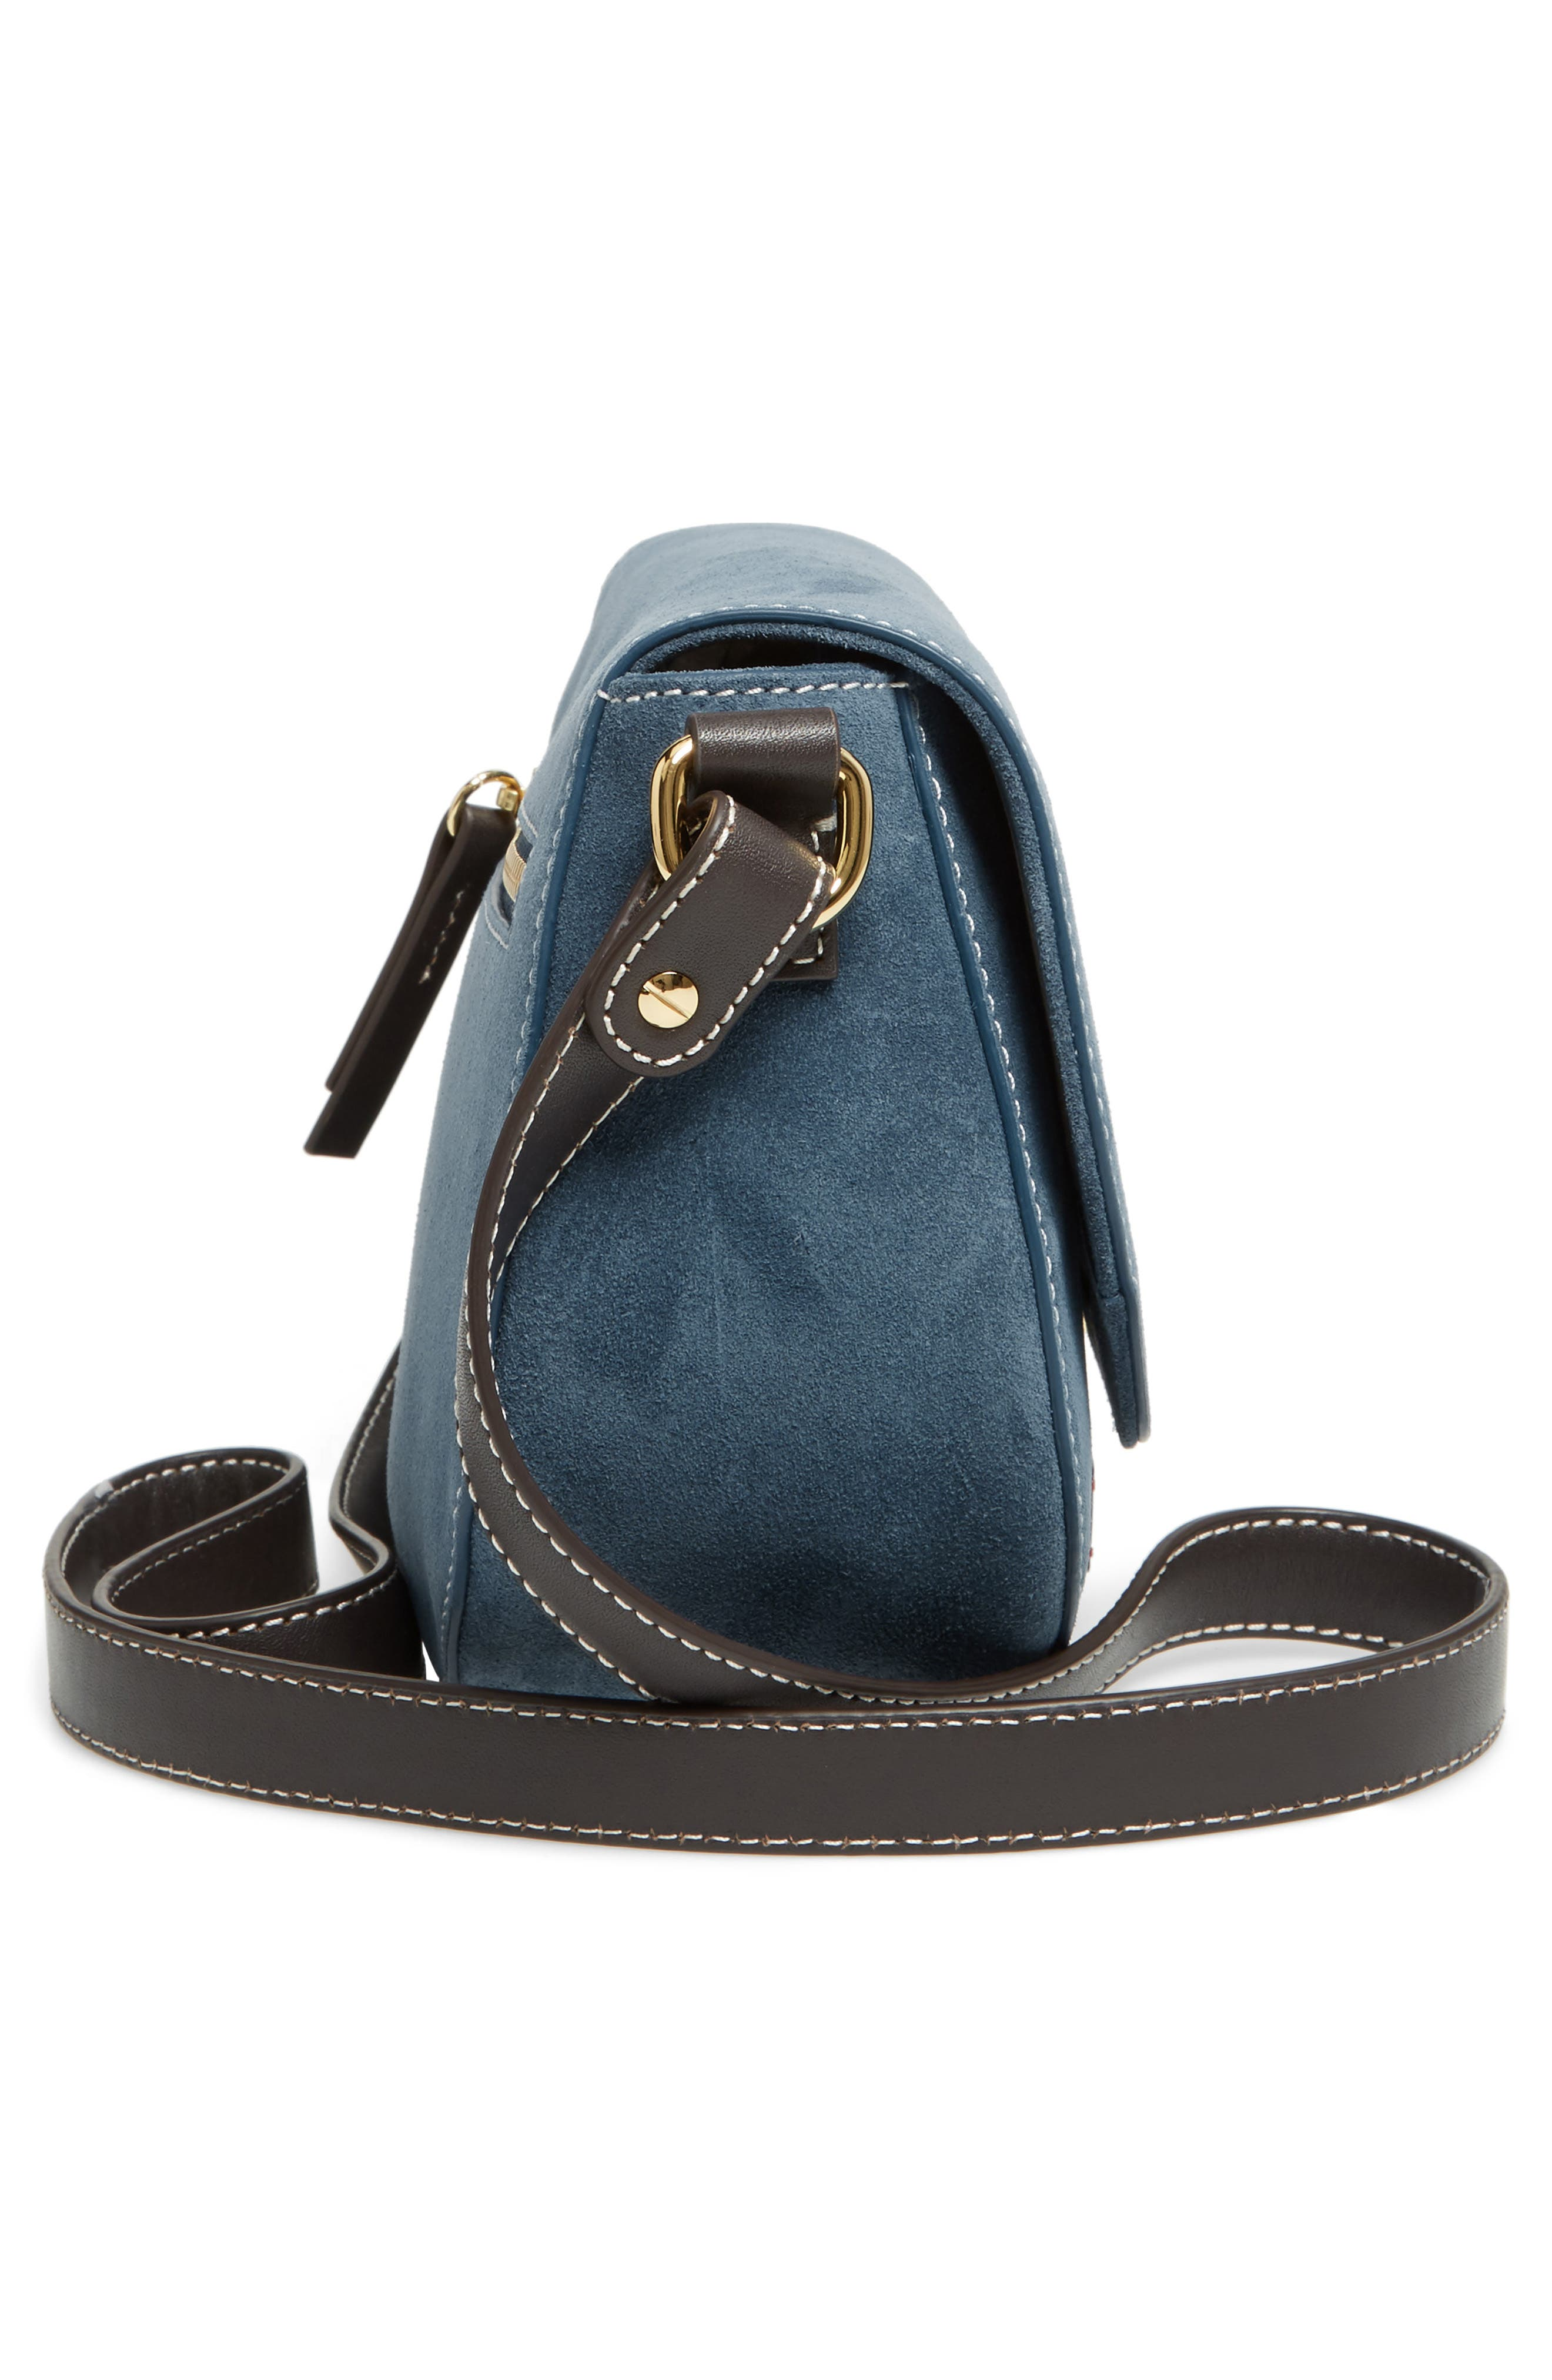 Mini Ellen Suede Crossbody Bag,                             Alternate thumbnail 5, color,                             Dark Teal